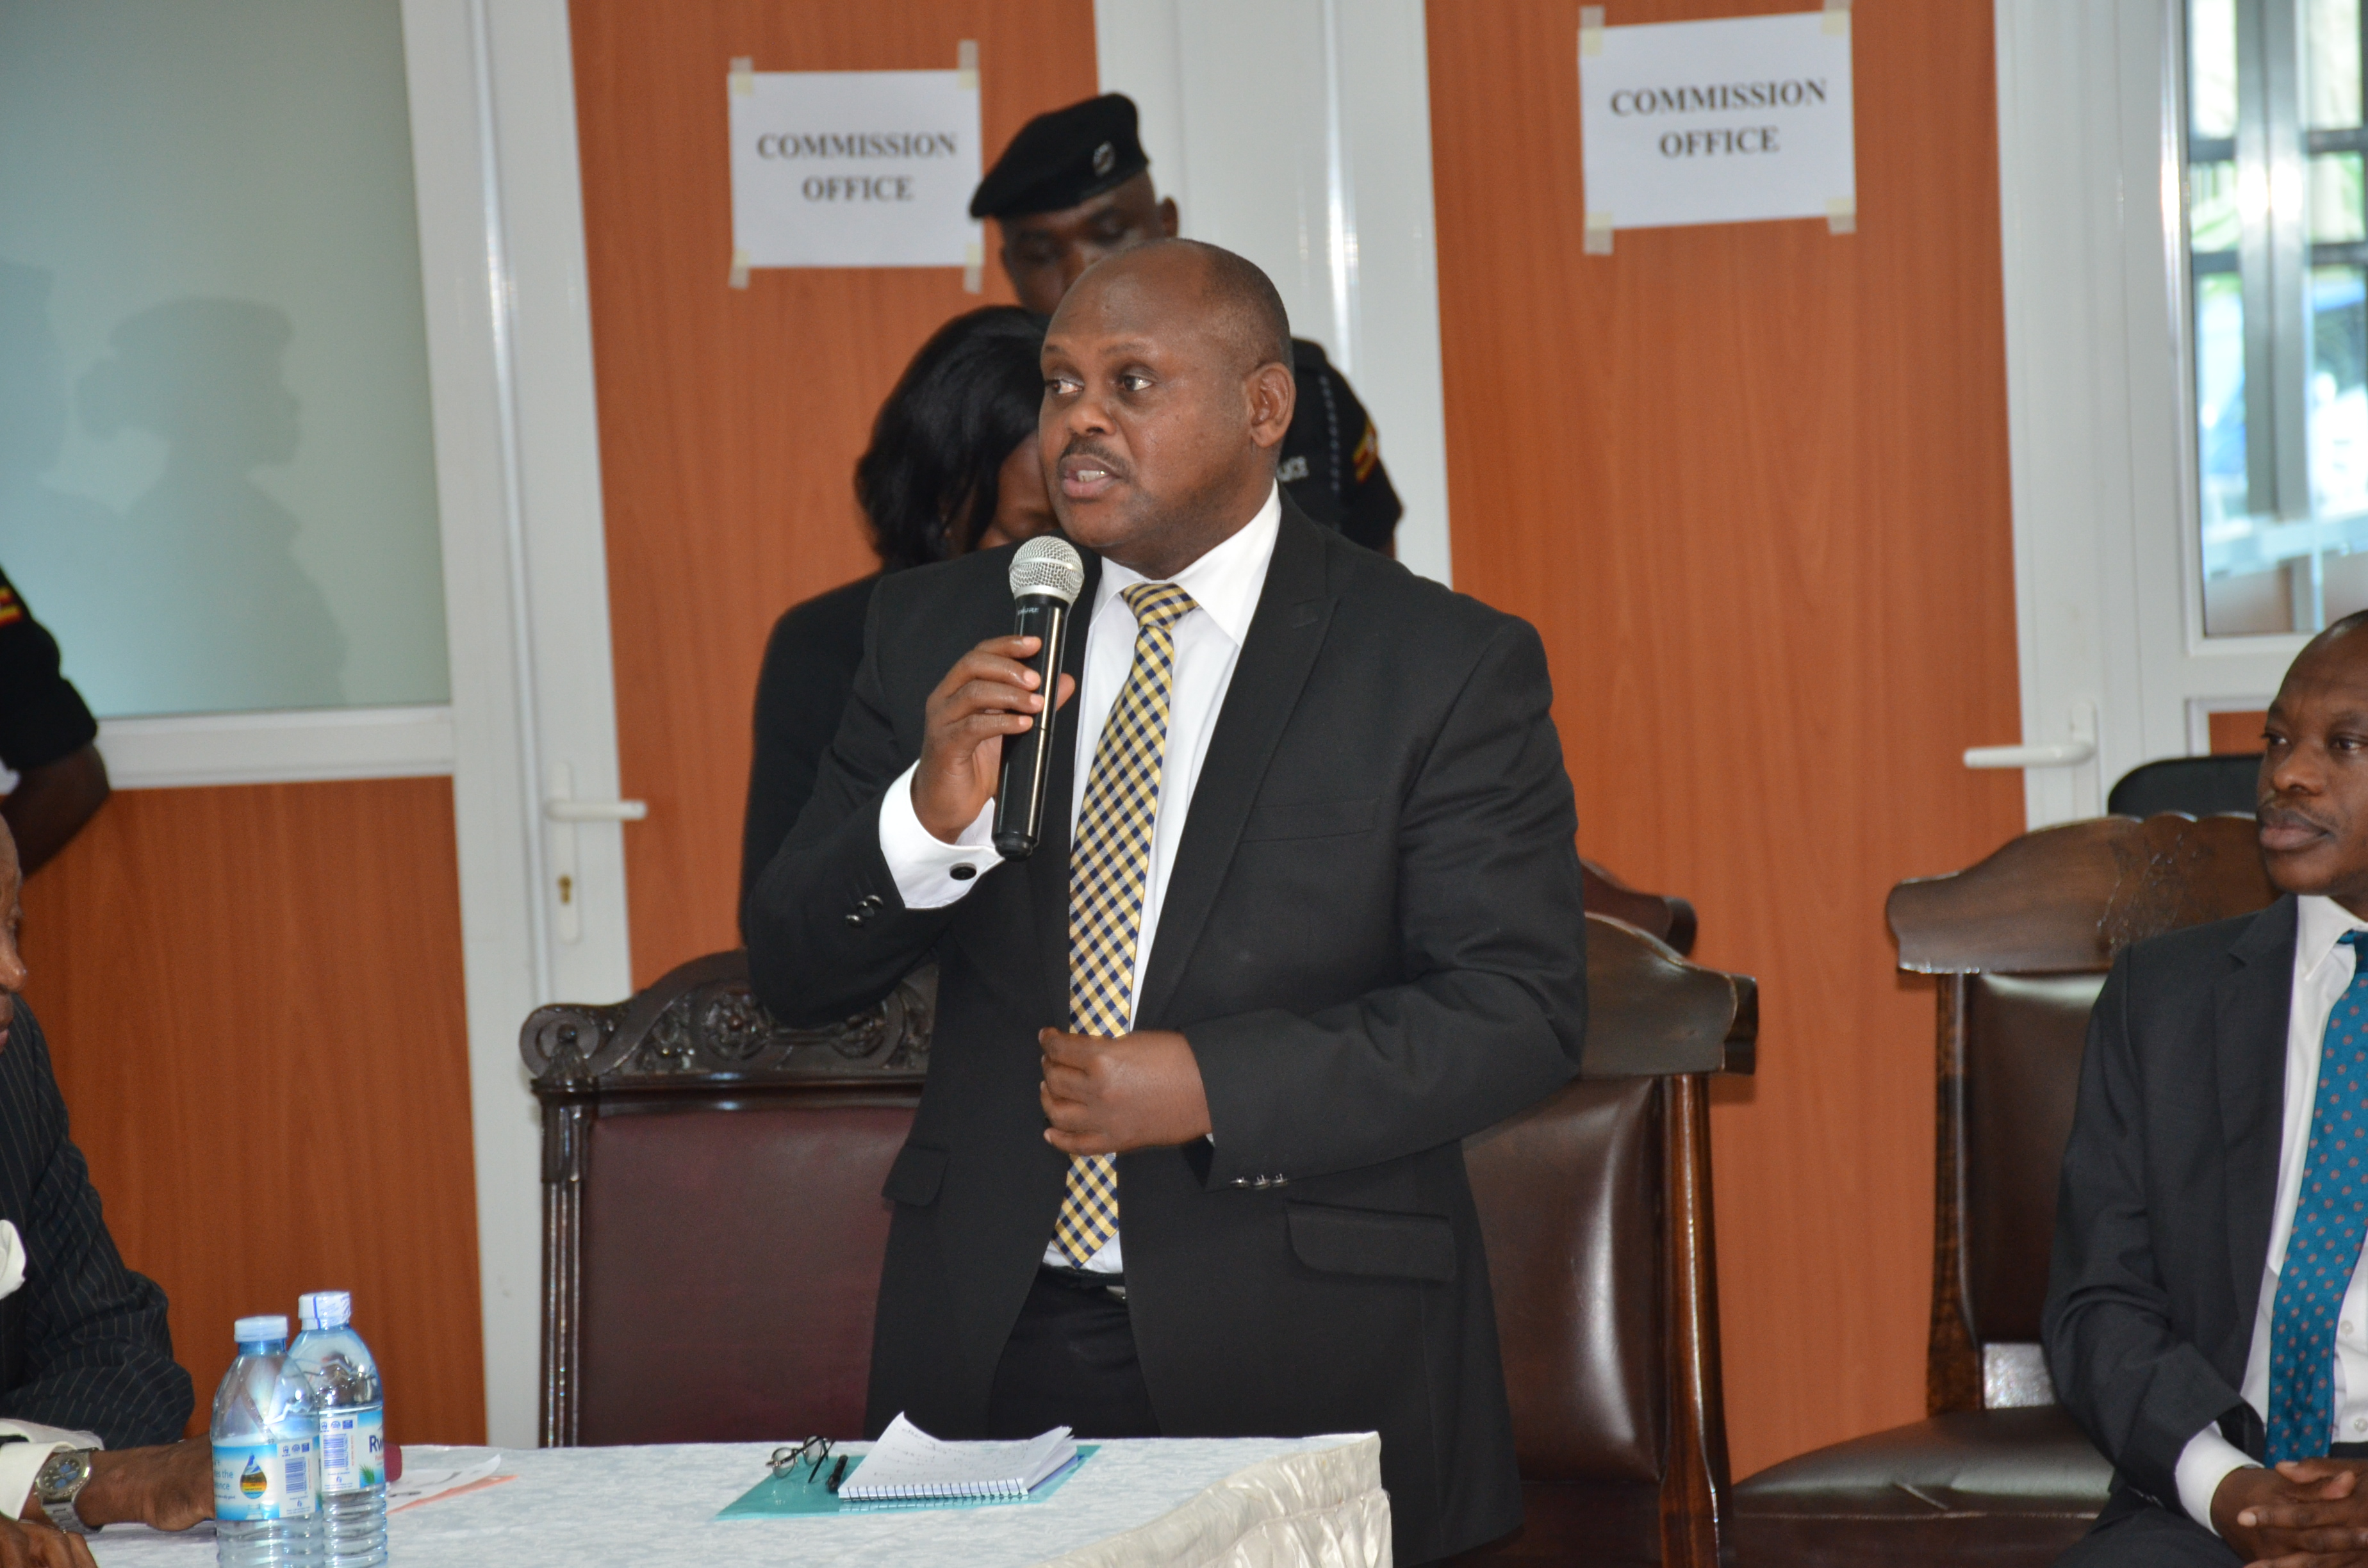 State Minister for Urban Planning Isaac Musumba making his remarks during the launch of the Commission of Inquiry into land matters at the commission's offices at Wandegeya in Kampala.